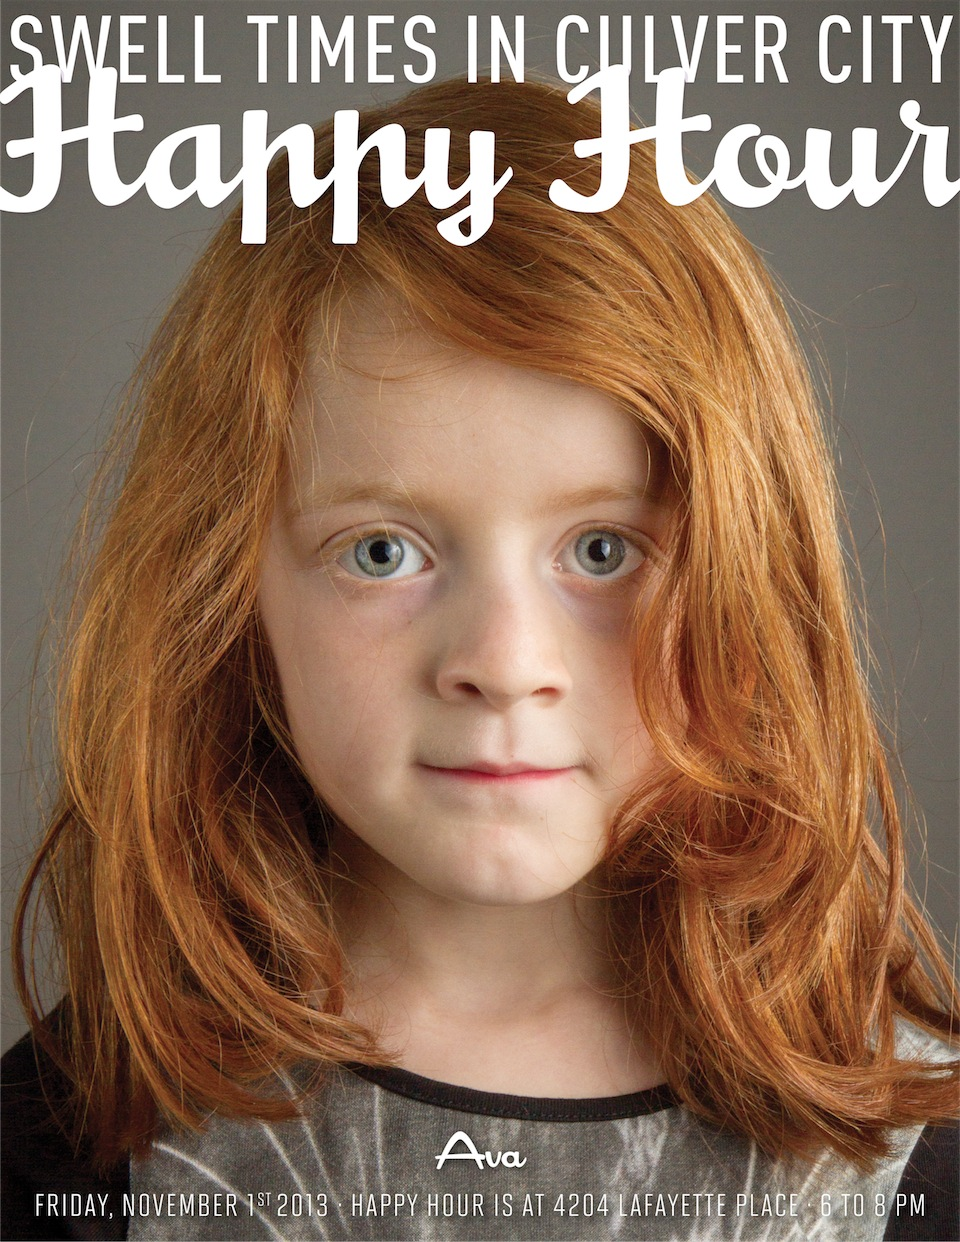 HappyHour_KidsPortraits_PartTwo_2013_10_31__23h124.jpeg